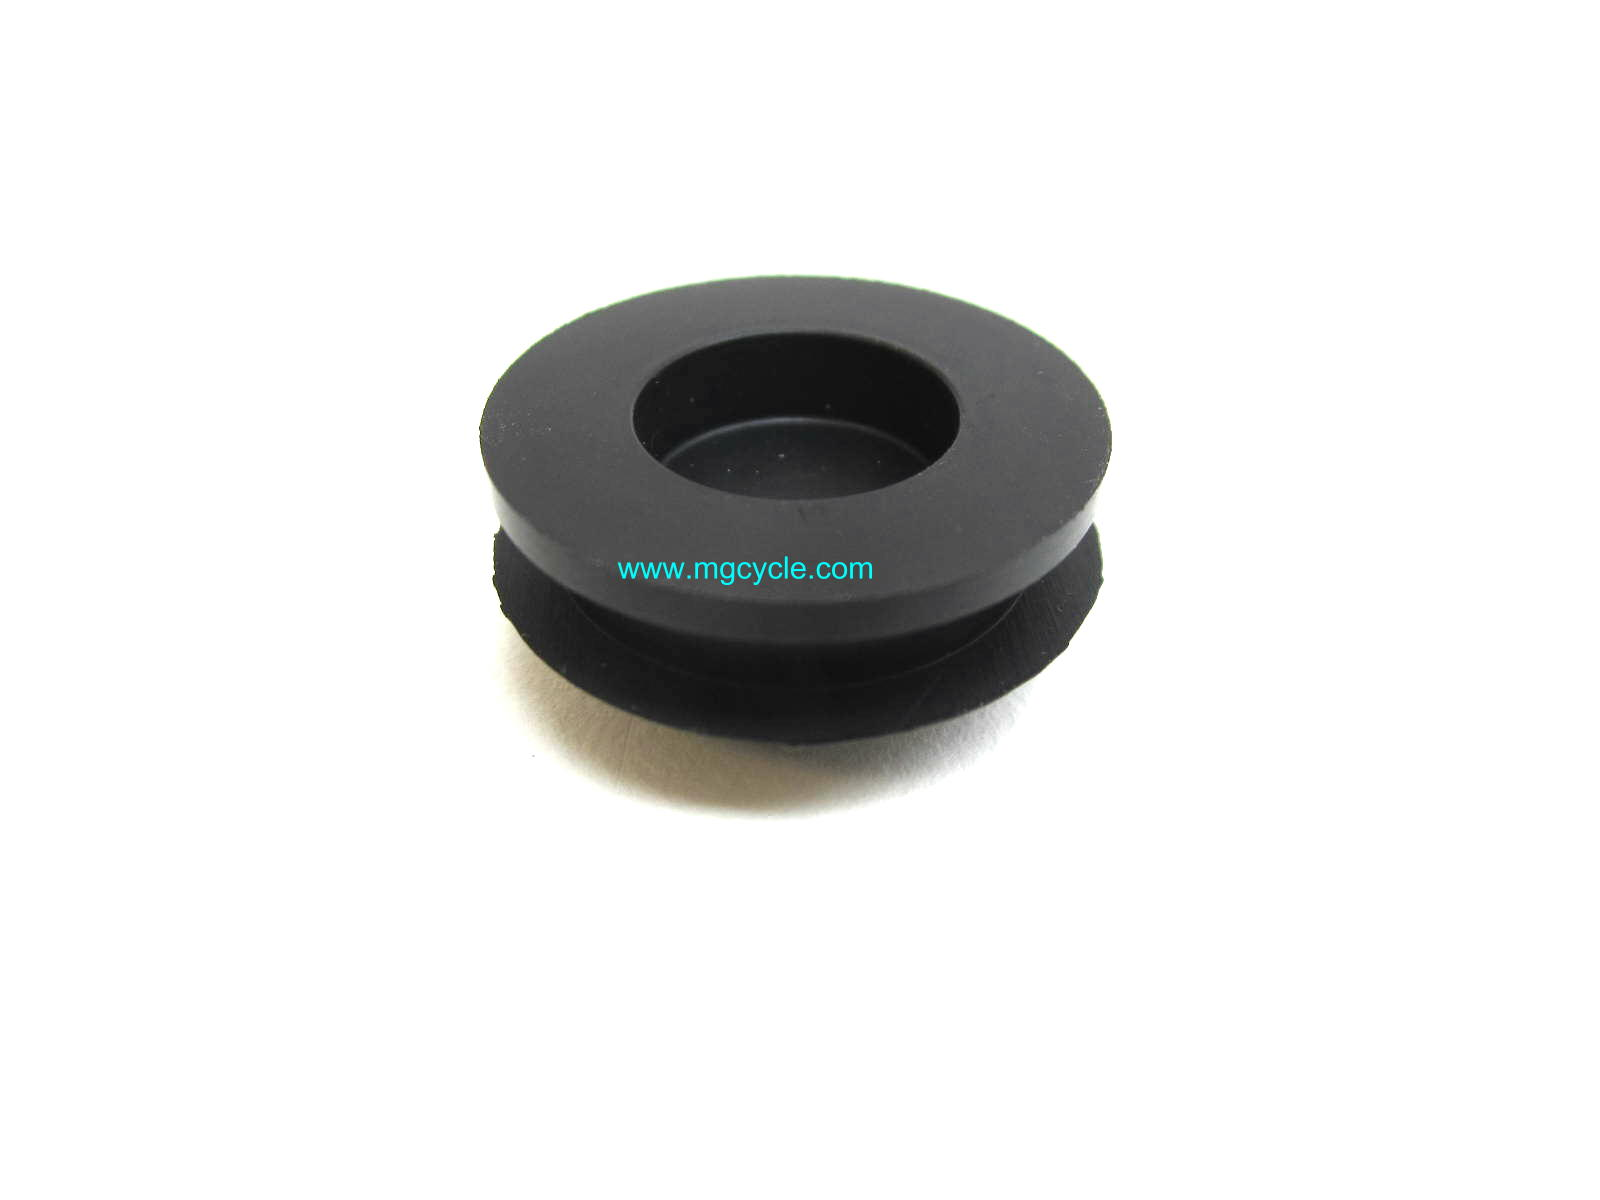 Rubber plug timing inspection flywheel view hole most all Guzzis